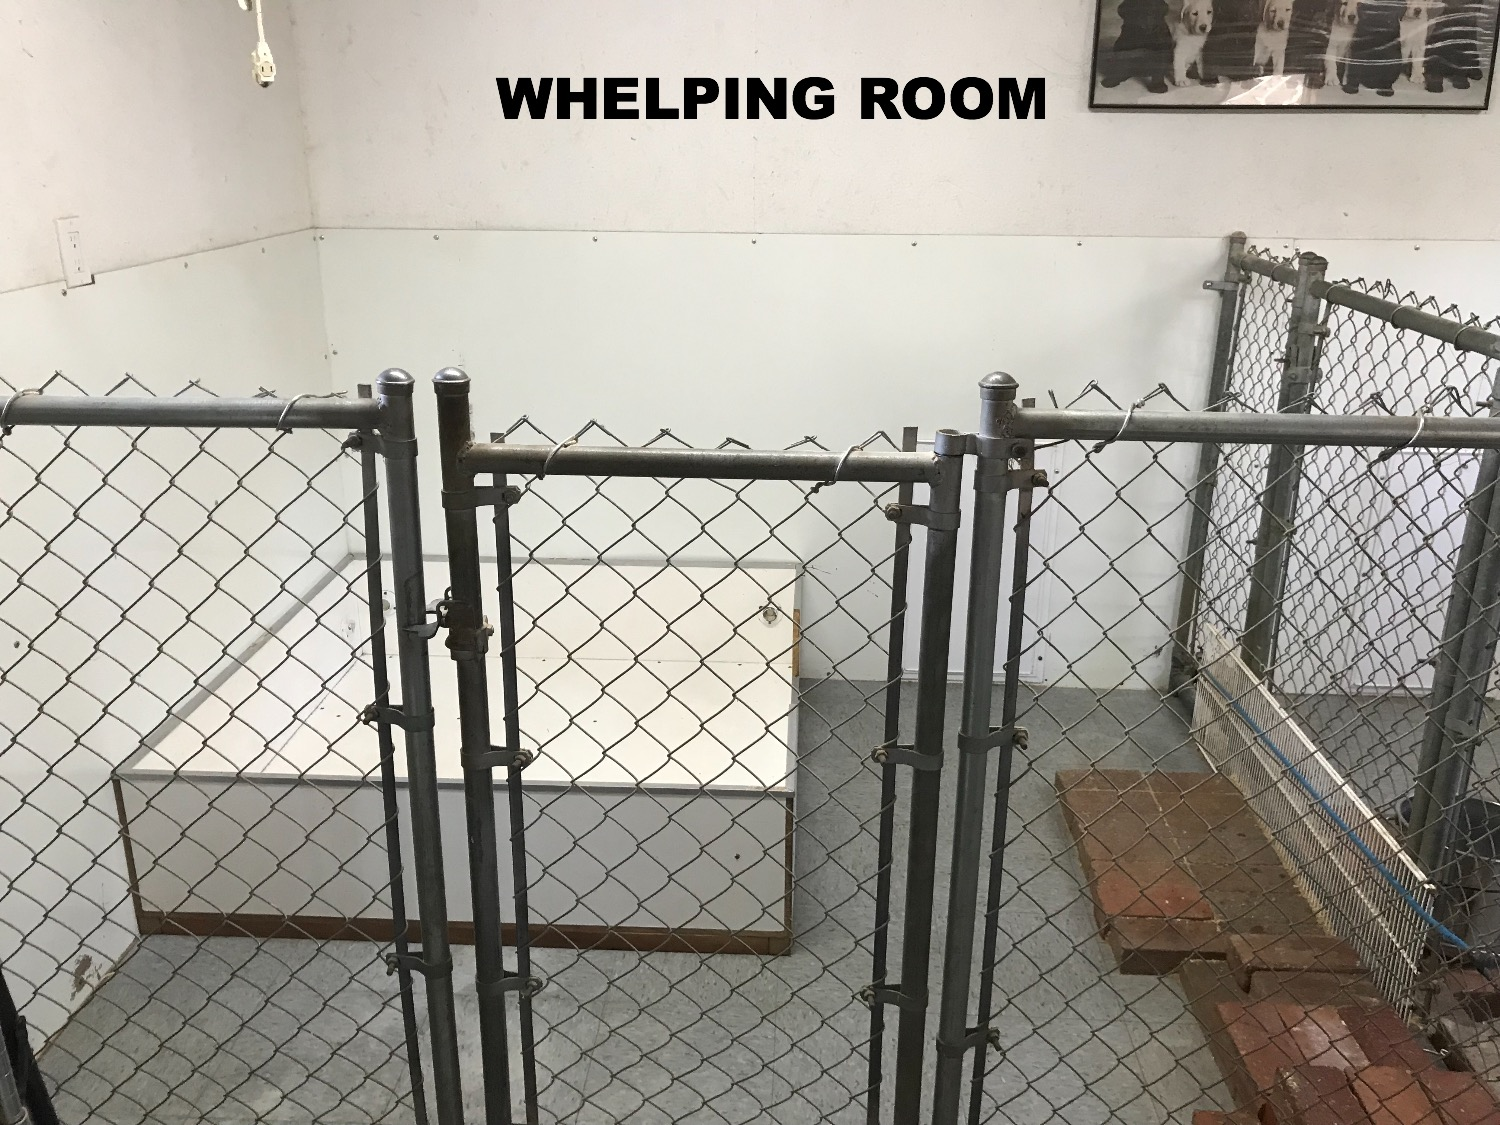 Whelping Room